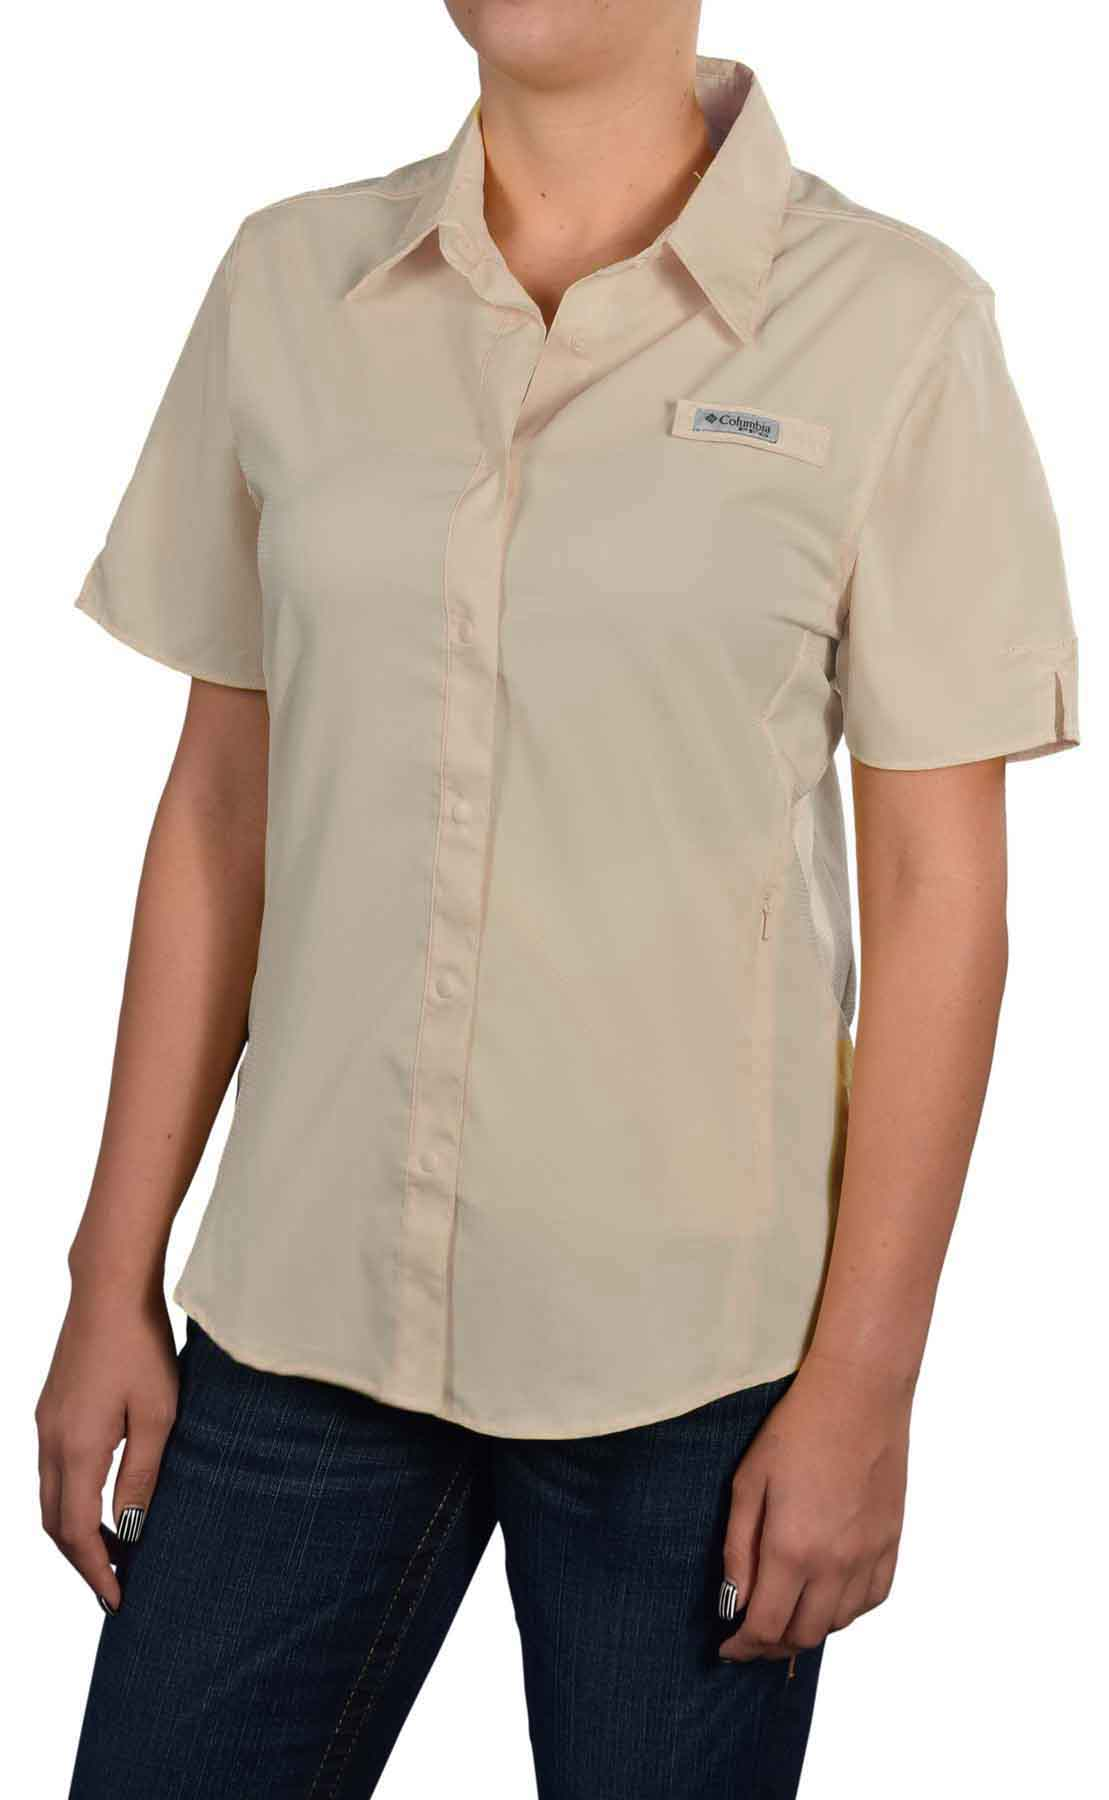 Columbia women 39 s crystal springs pfg short sleeve shirt ebay for What is a pfg shirt